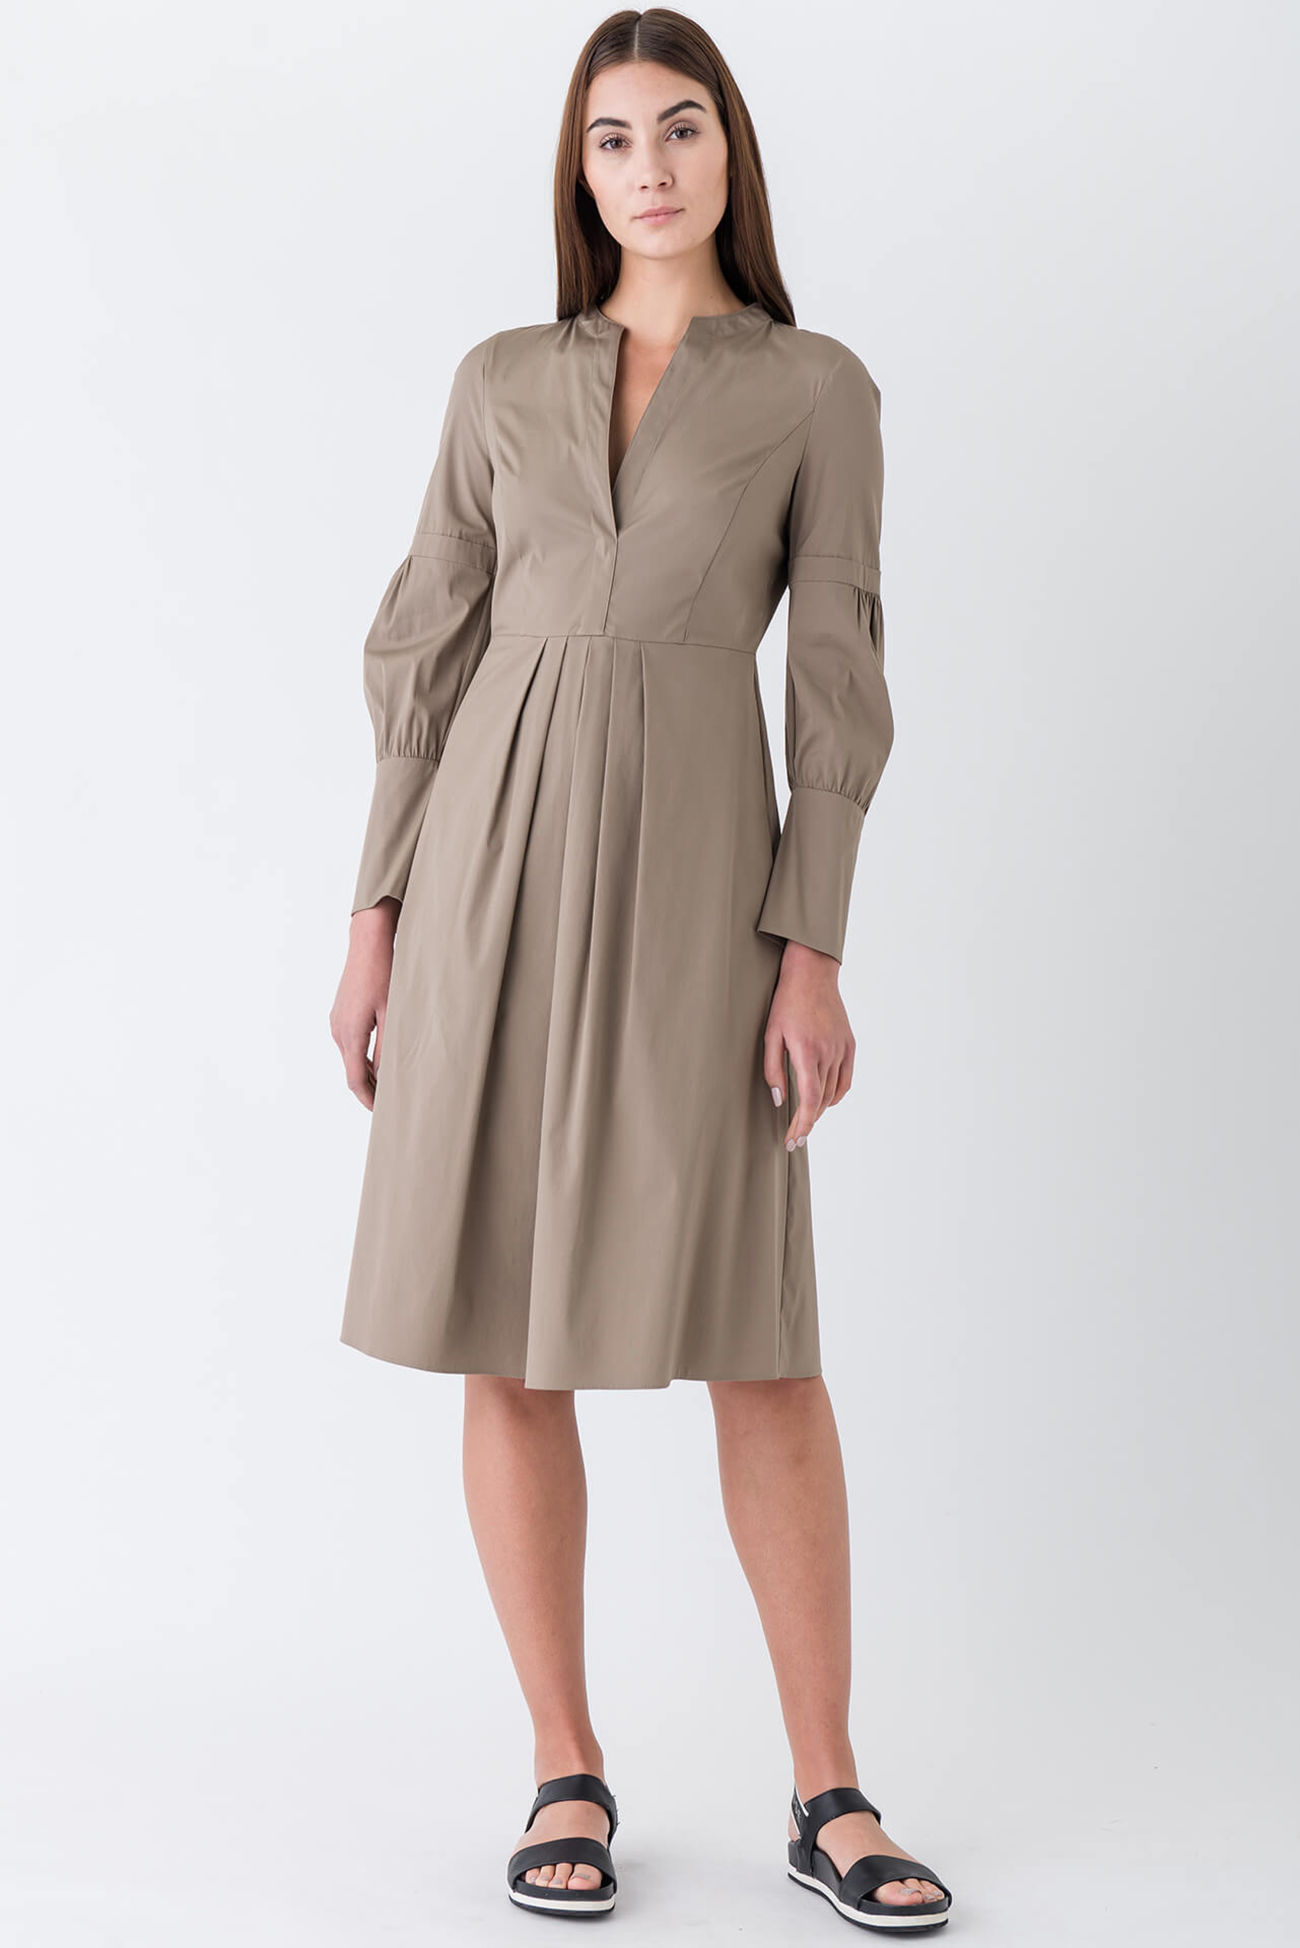 Flamboyant shirtdress for the office